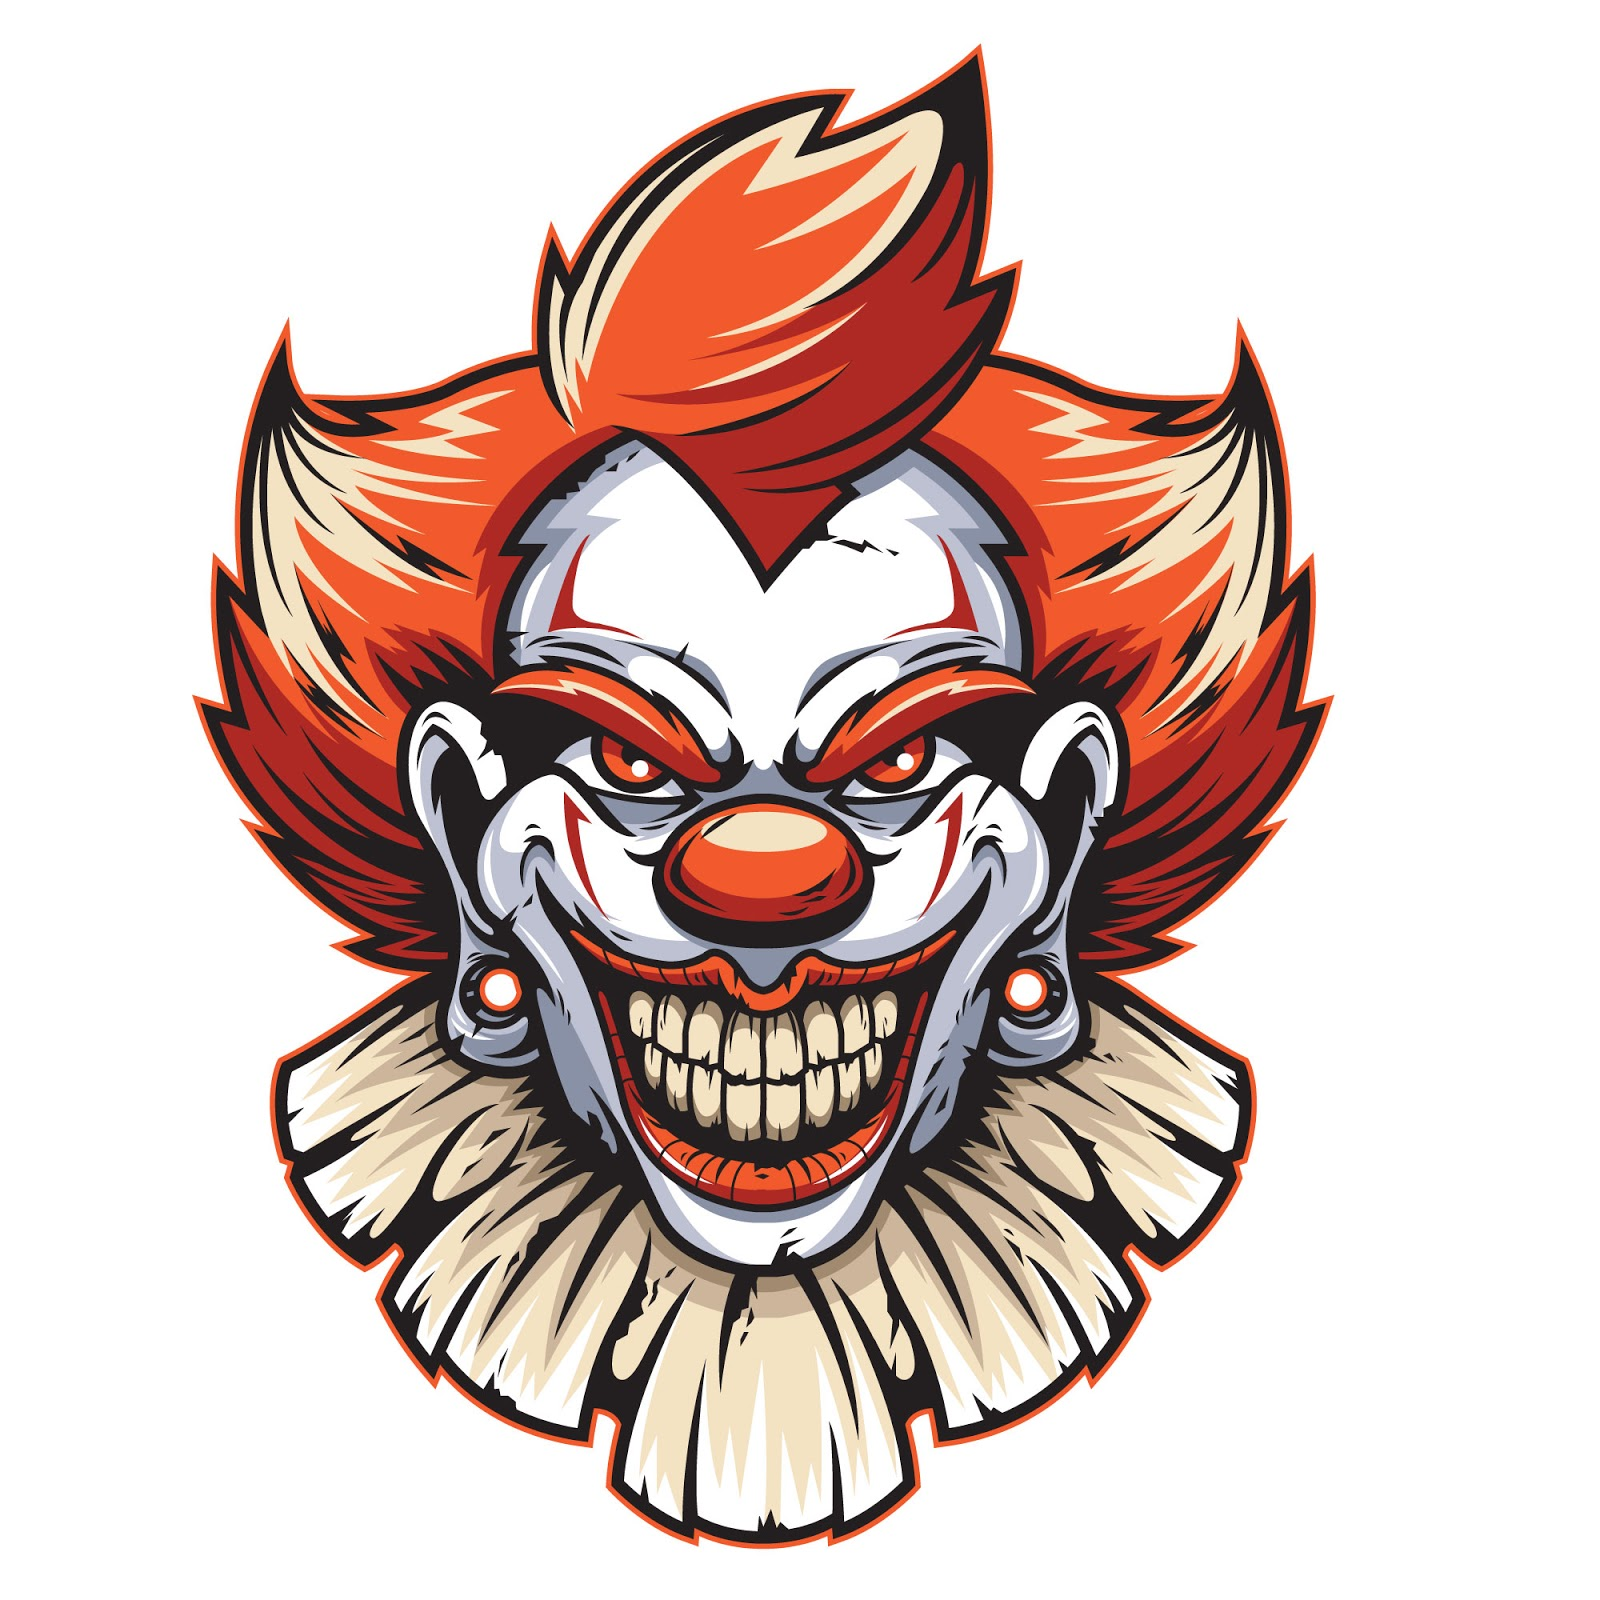 Joker Logo Free Download Vector CDR, AI, EPS and PNG Formats